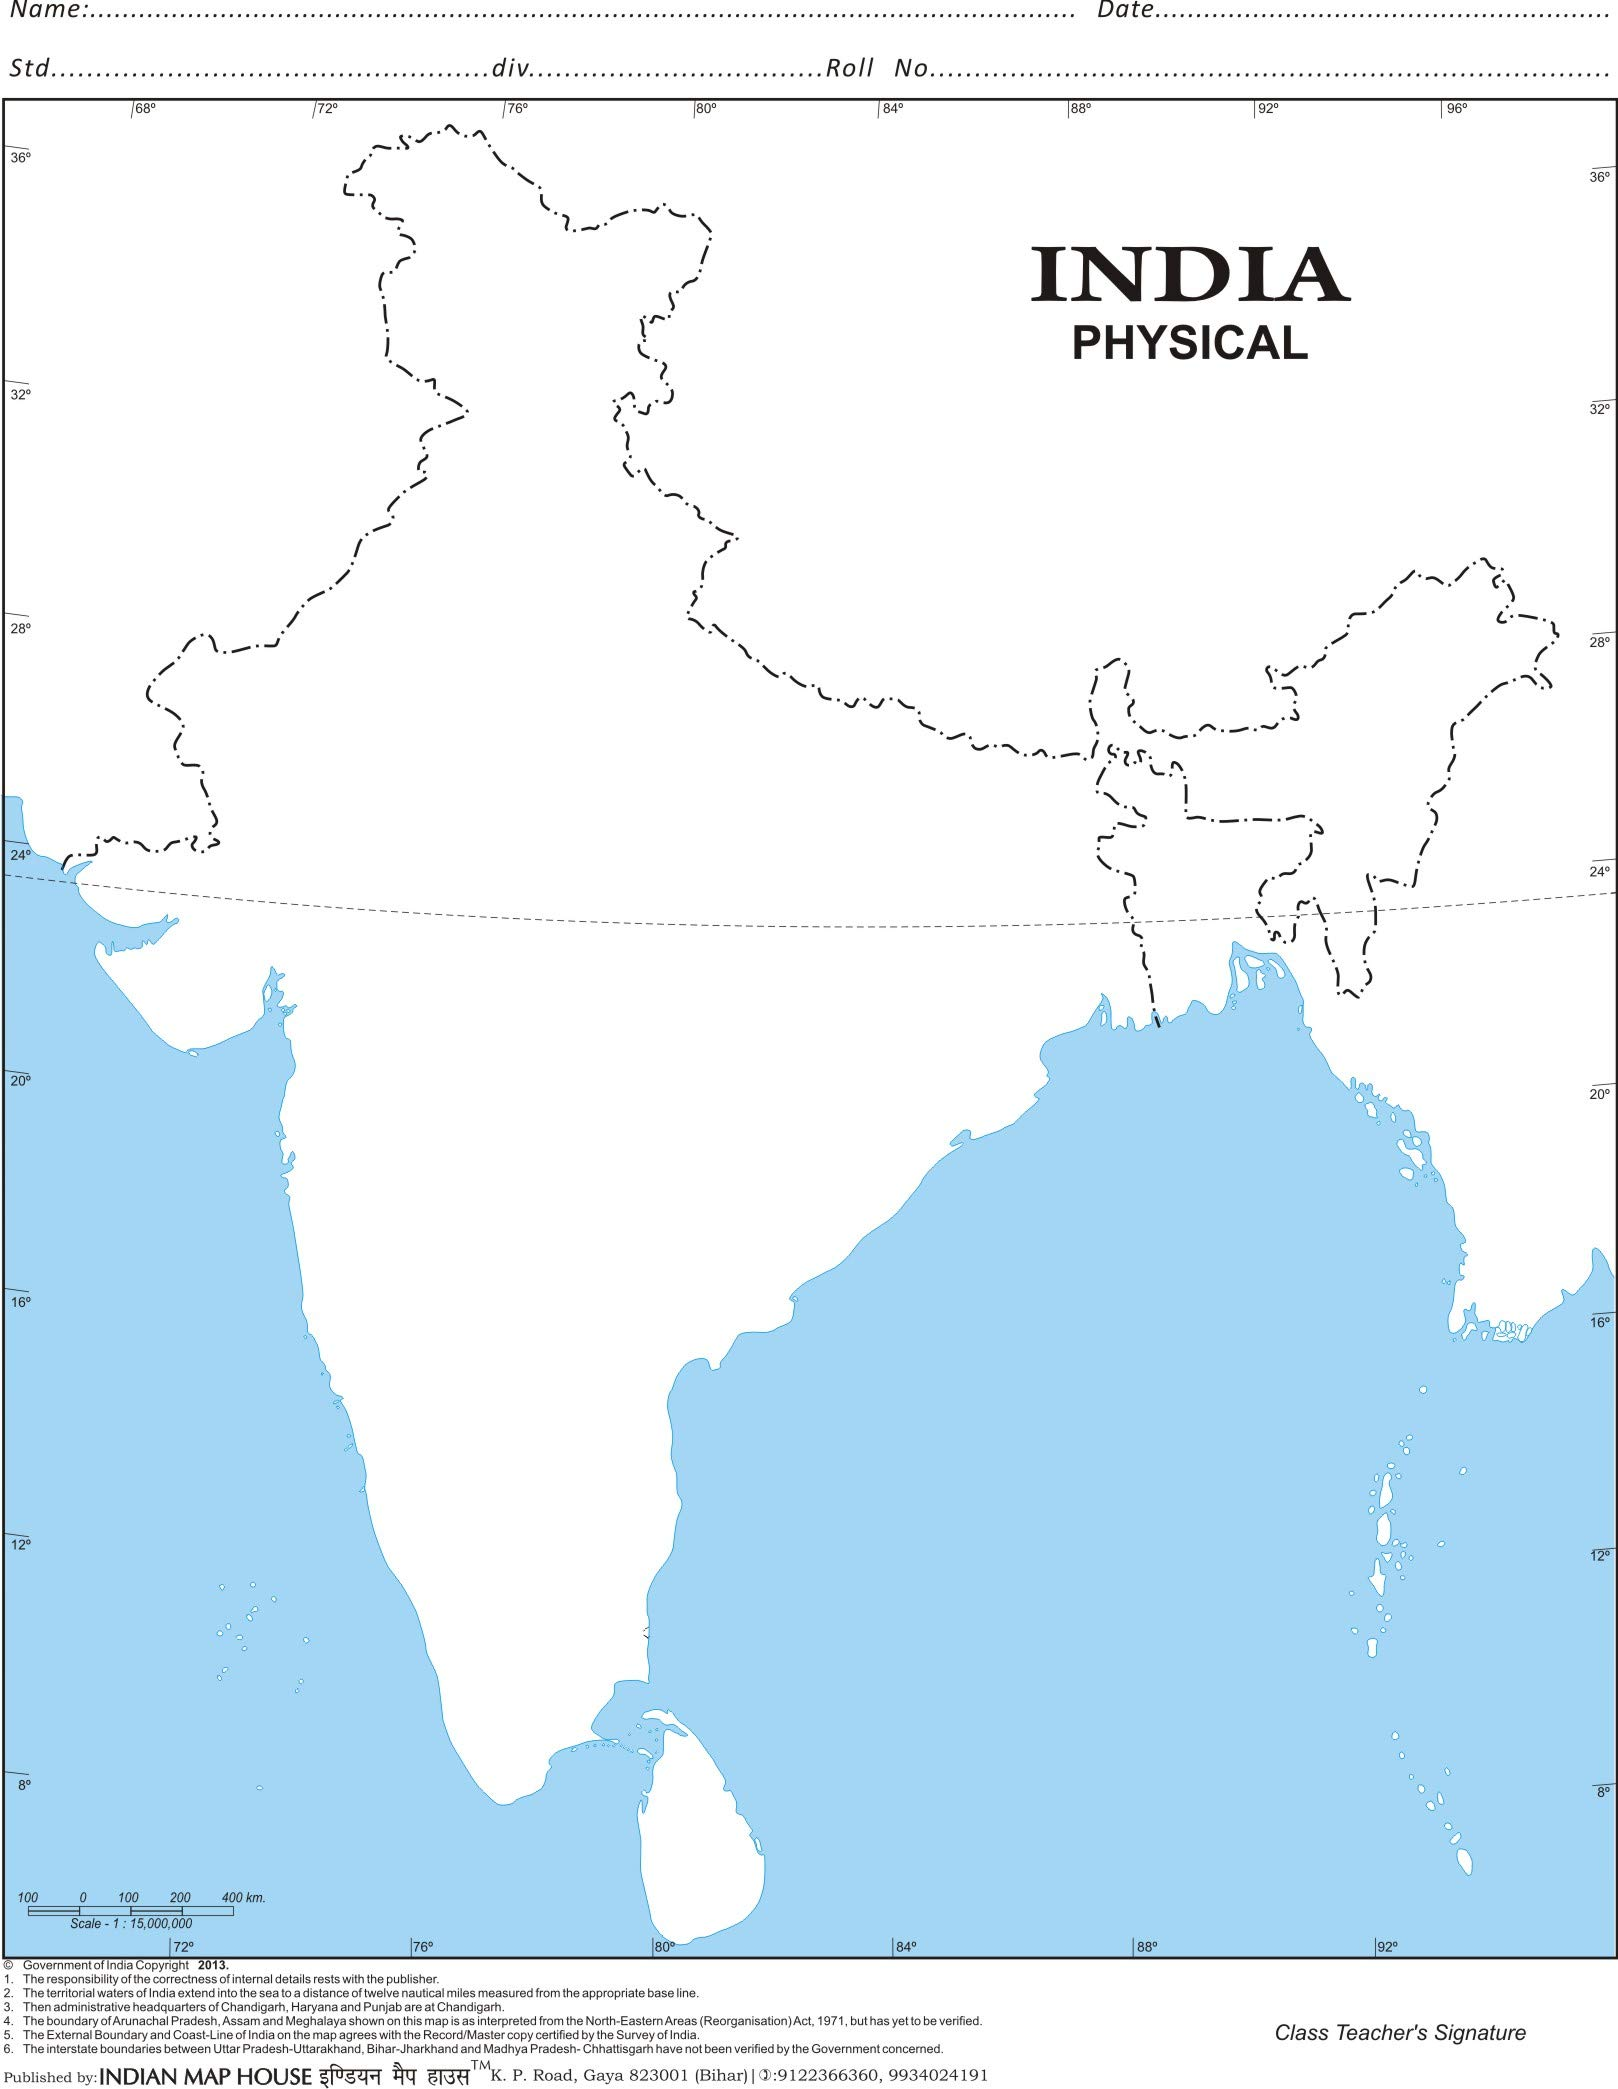 outline physical map of india India Physical Map A4 Offikart outline physical map of india